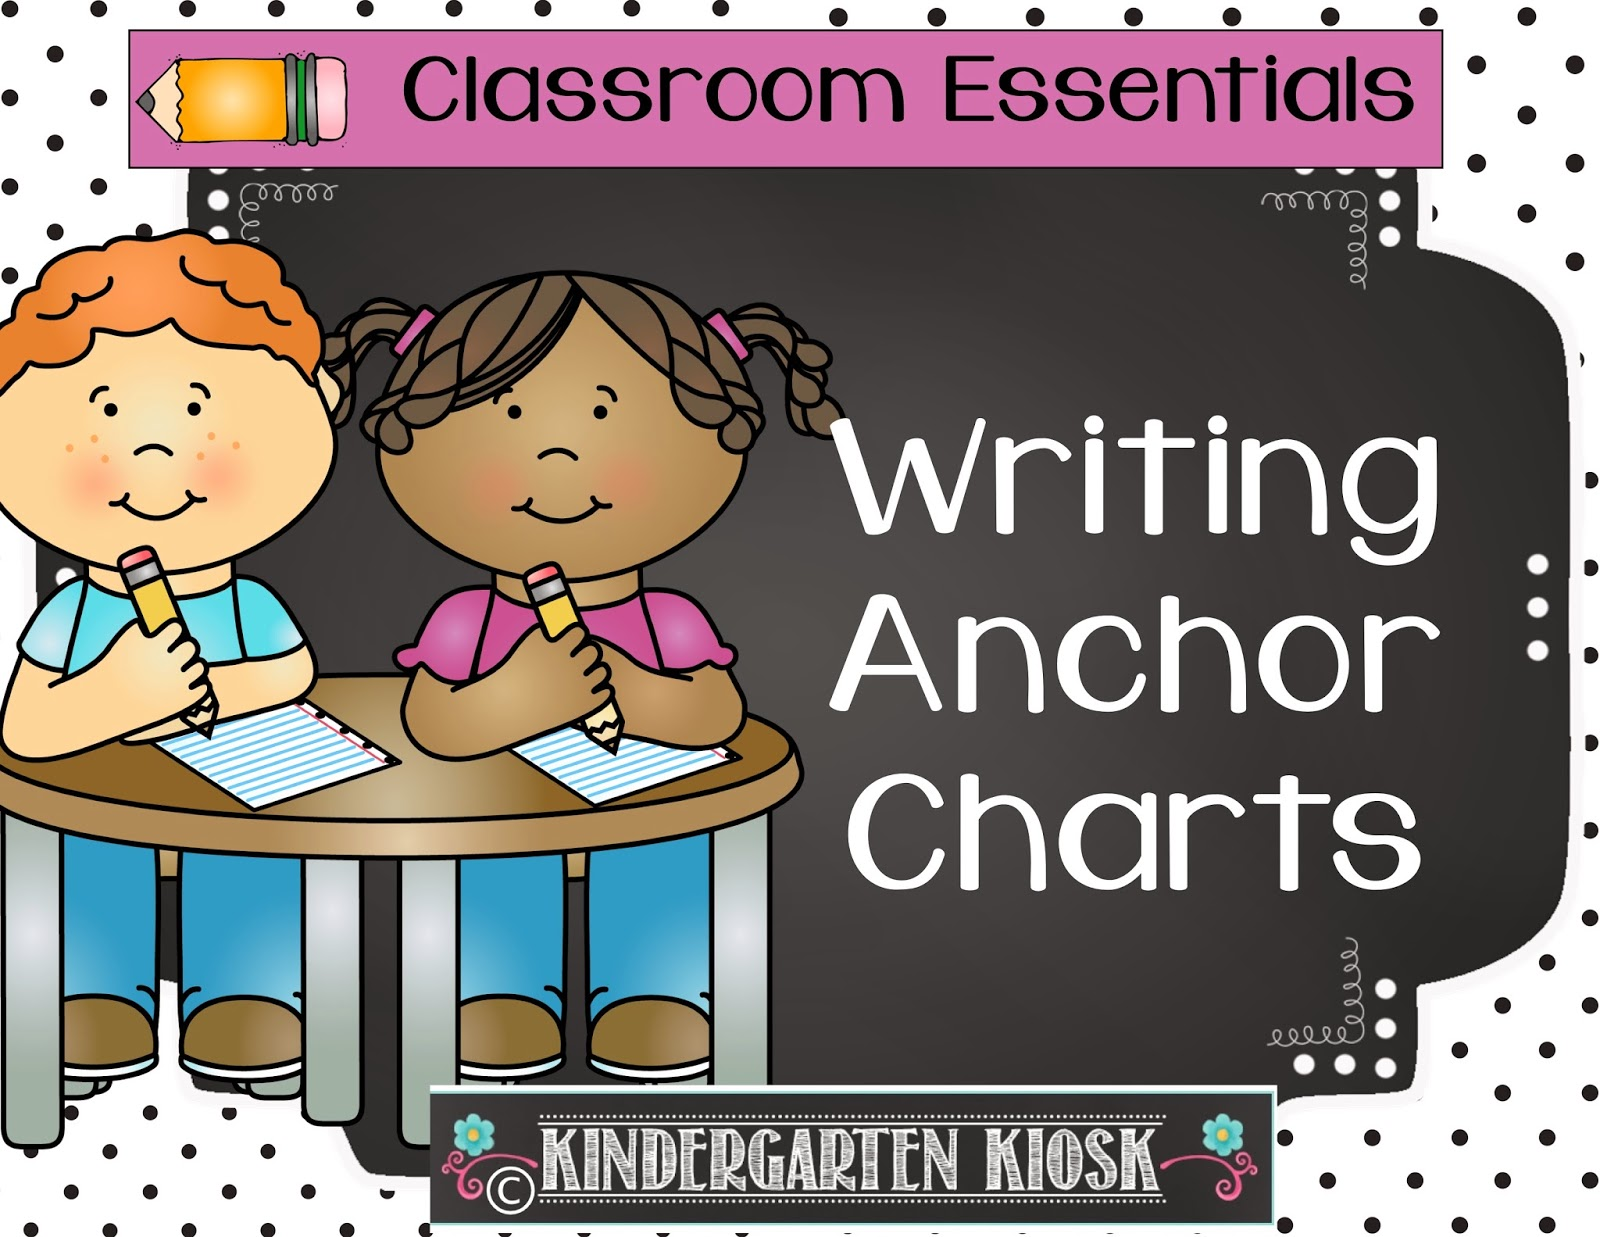 image freeuse Kindergarten kiosk center anchor. Writer clipart guided writing